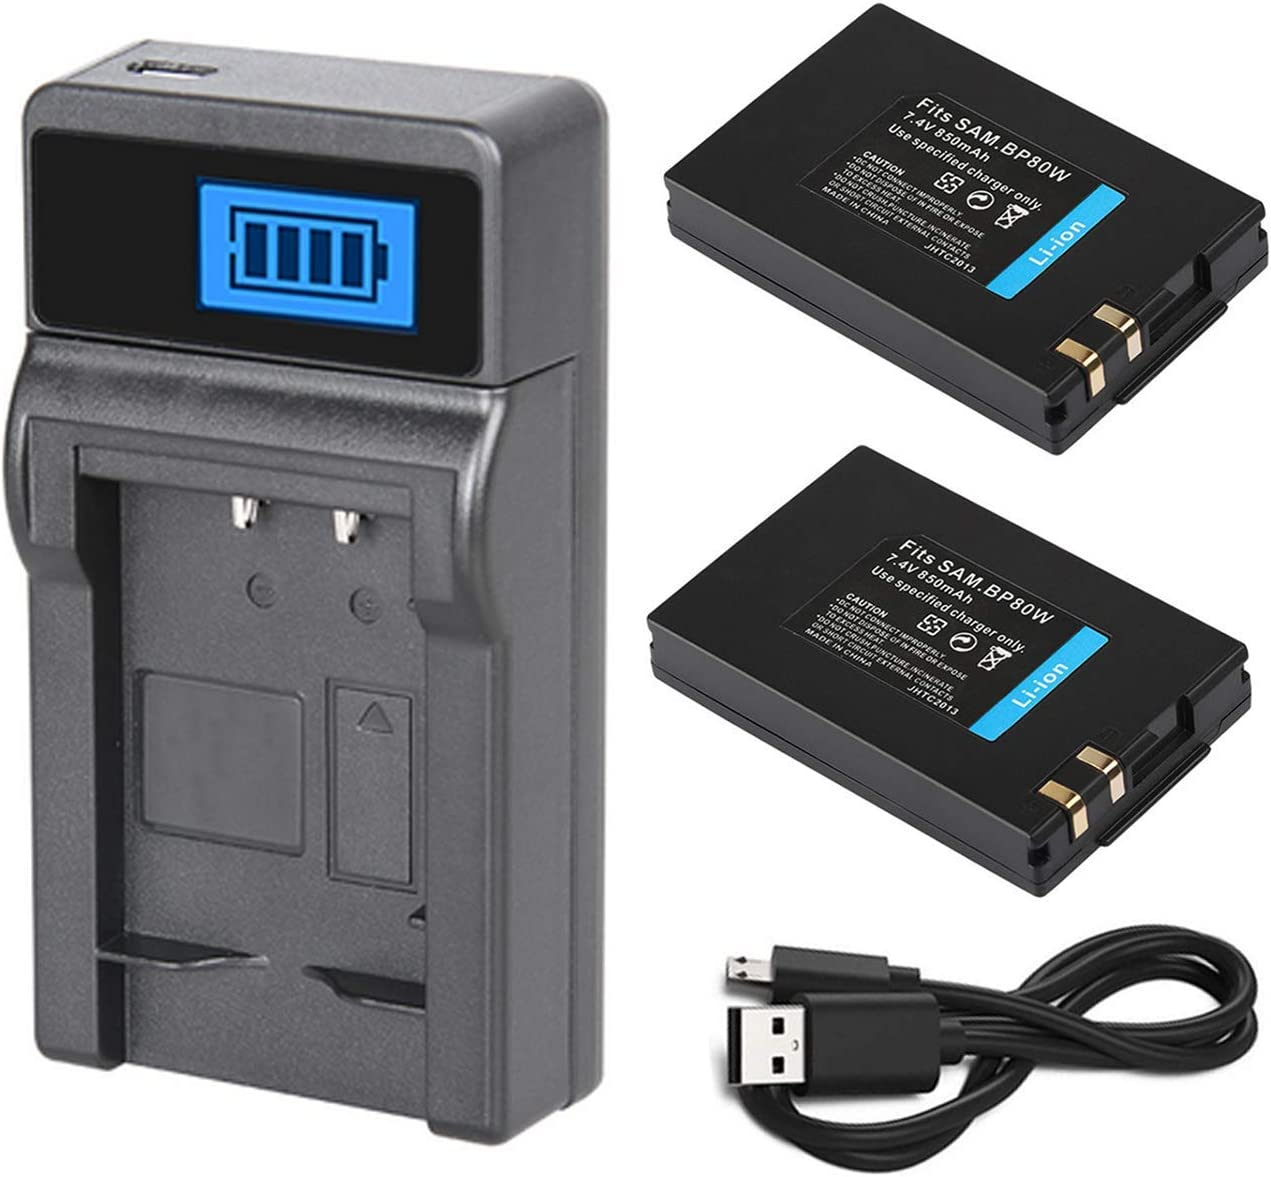 VP-D381i Battery Pack for Samsung VP-D381 VP-D382 VP-D382H Digital Camcorder VP-D382i